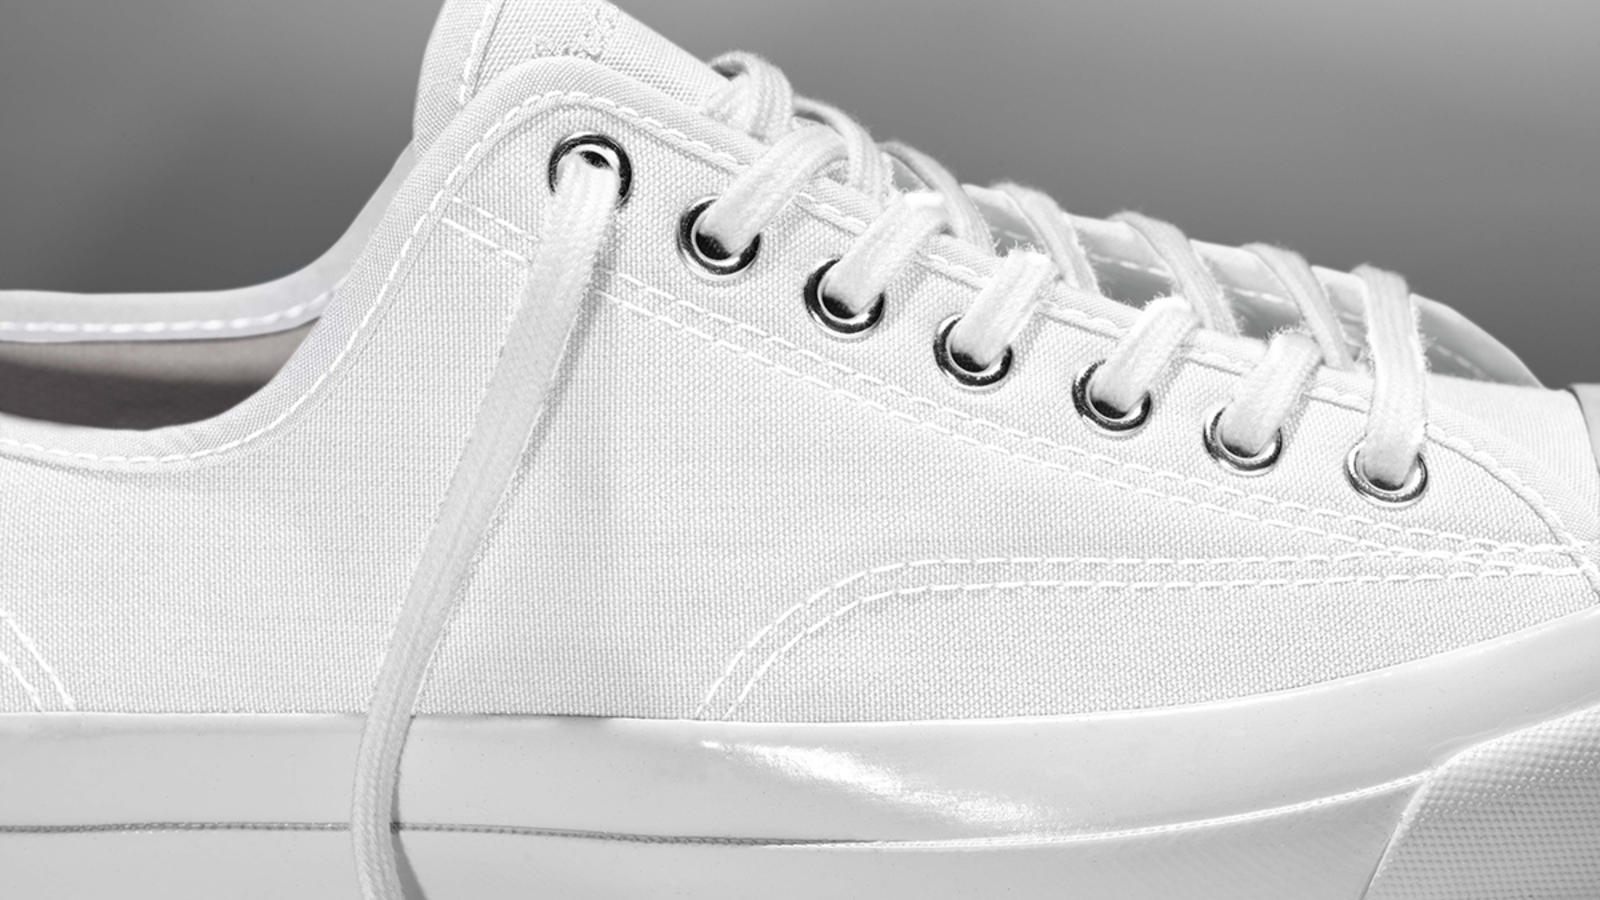 JACK PURCELL SIGNATURE SNEAKER - Nike